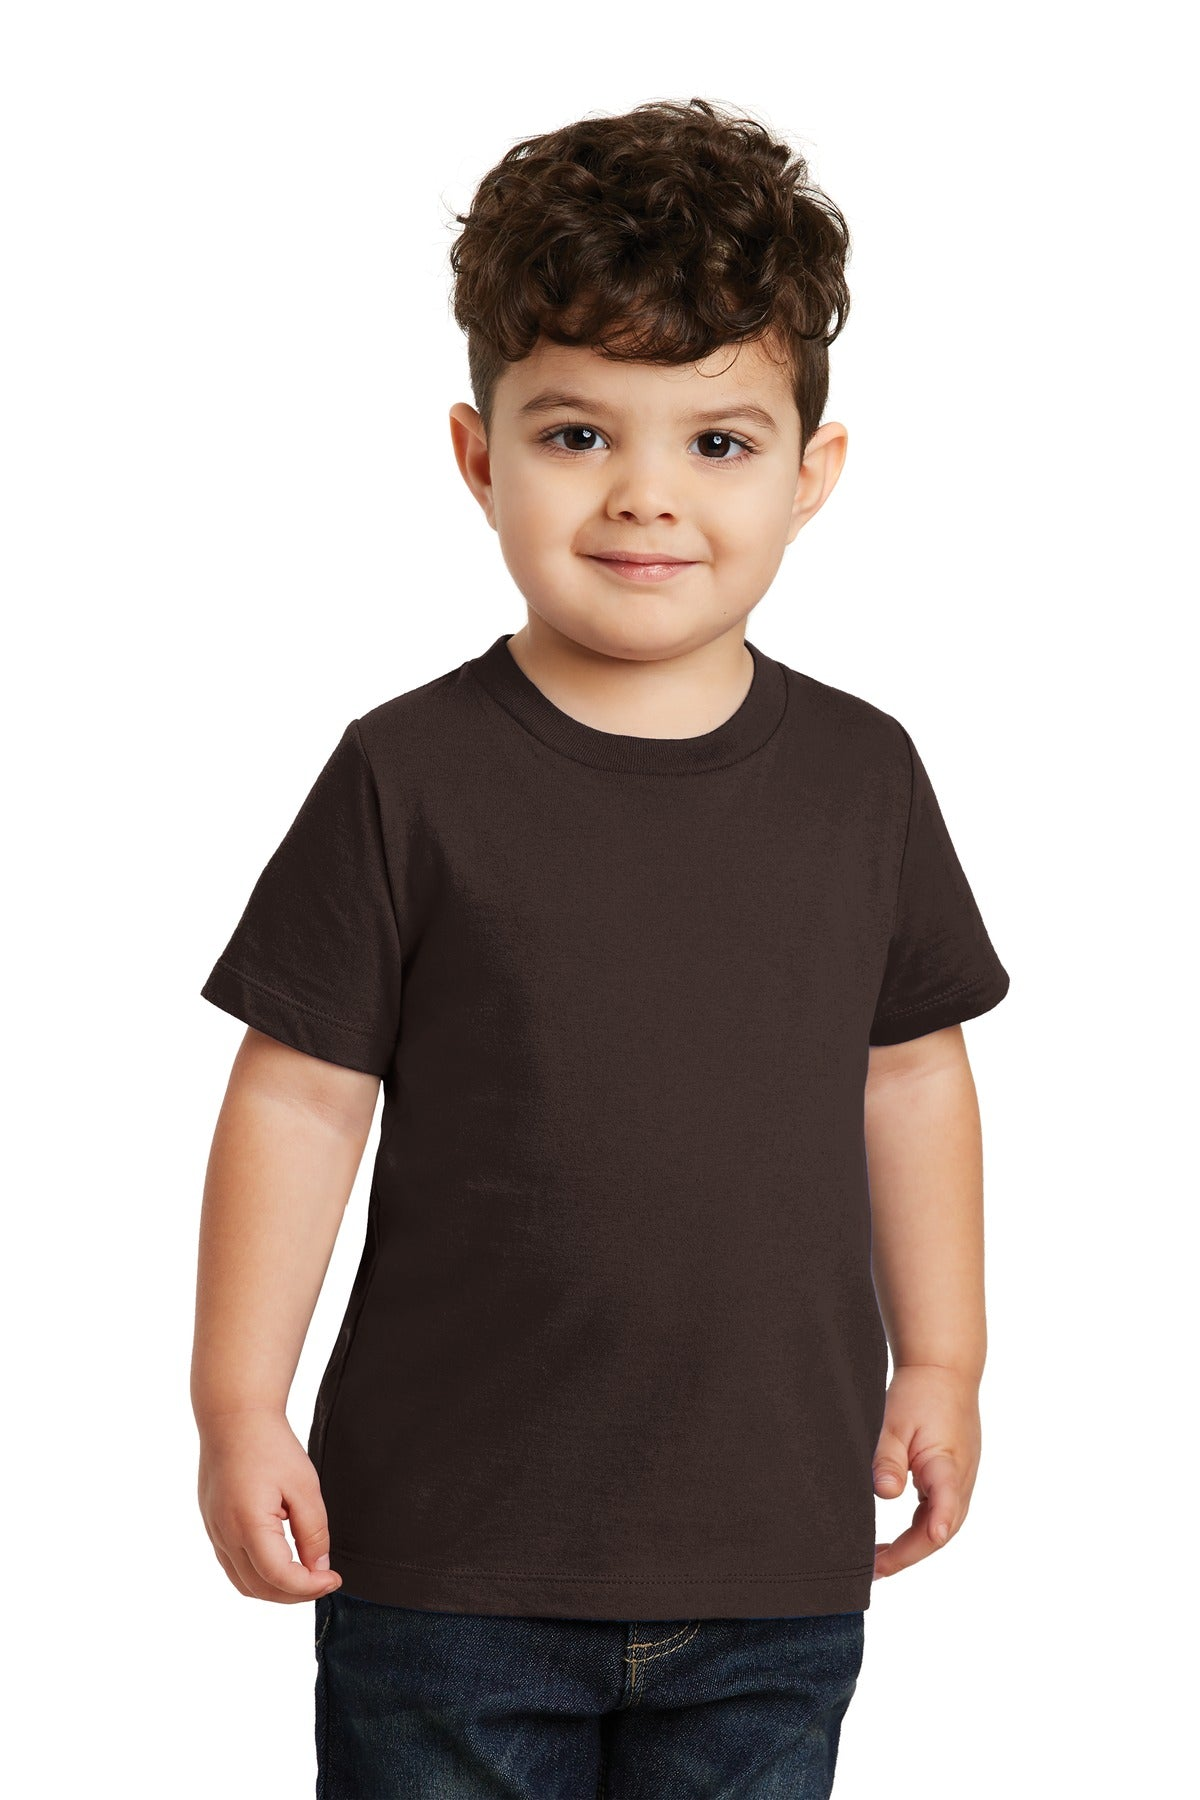 Dark Chocolate Brown Port & Company Toddler Fan Favorite T-Shirt